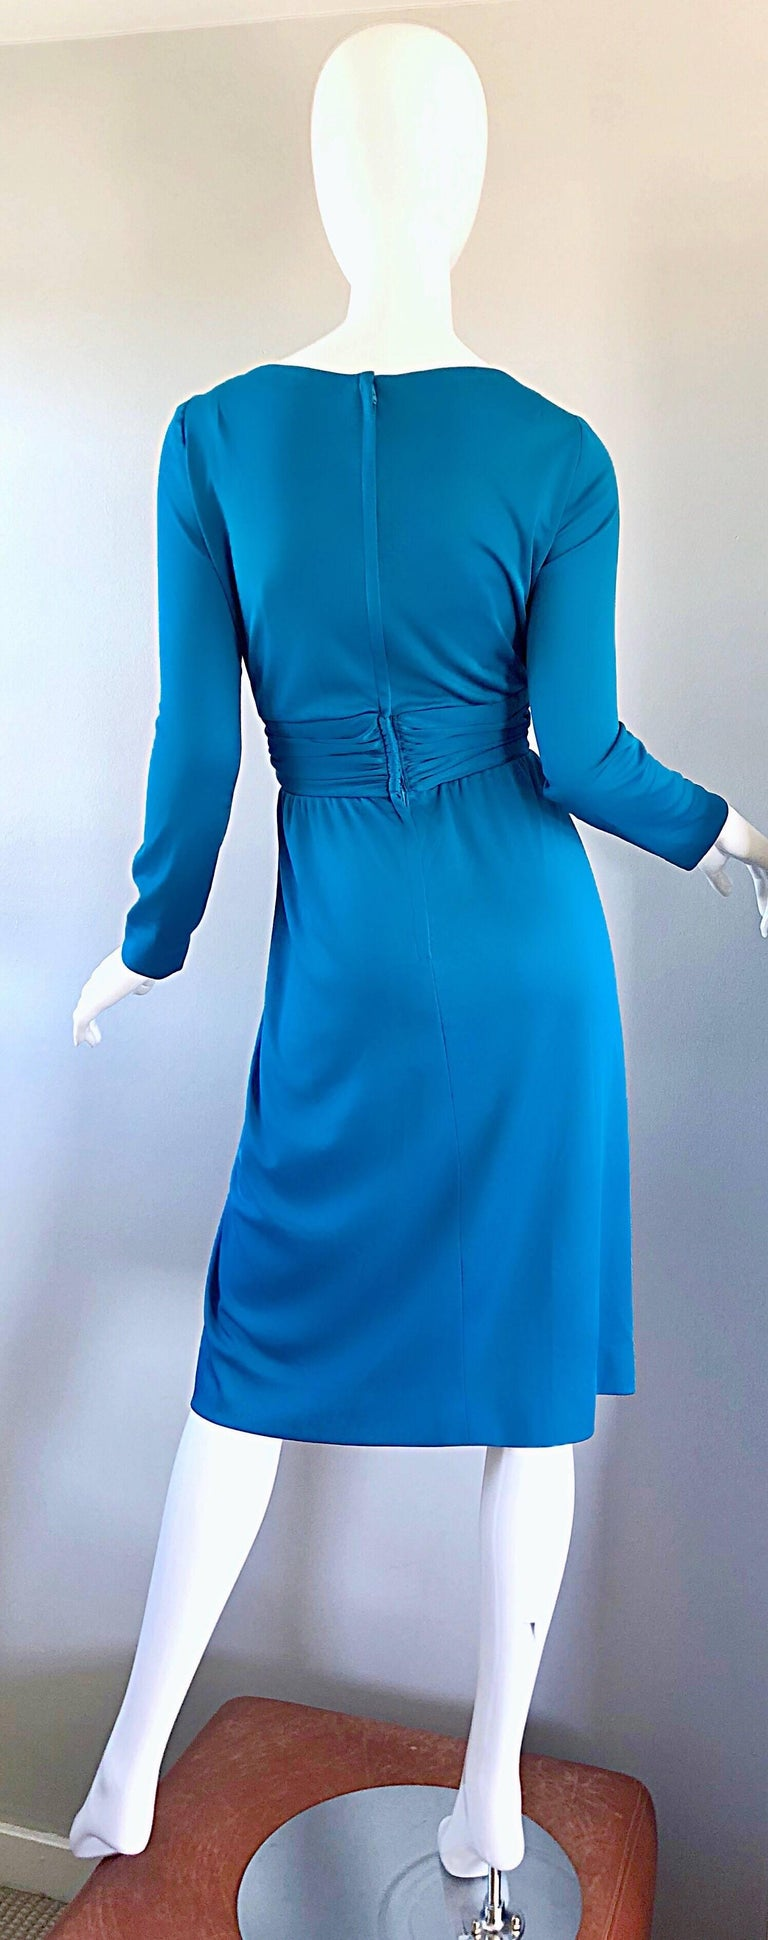 Vintage Lilli Diamond 1970s Teal Blue Long Sleeve 70s Knee Length Jersey Dress For Sale 3